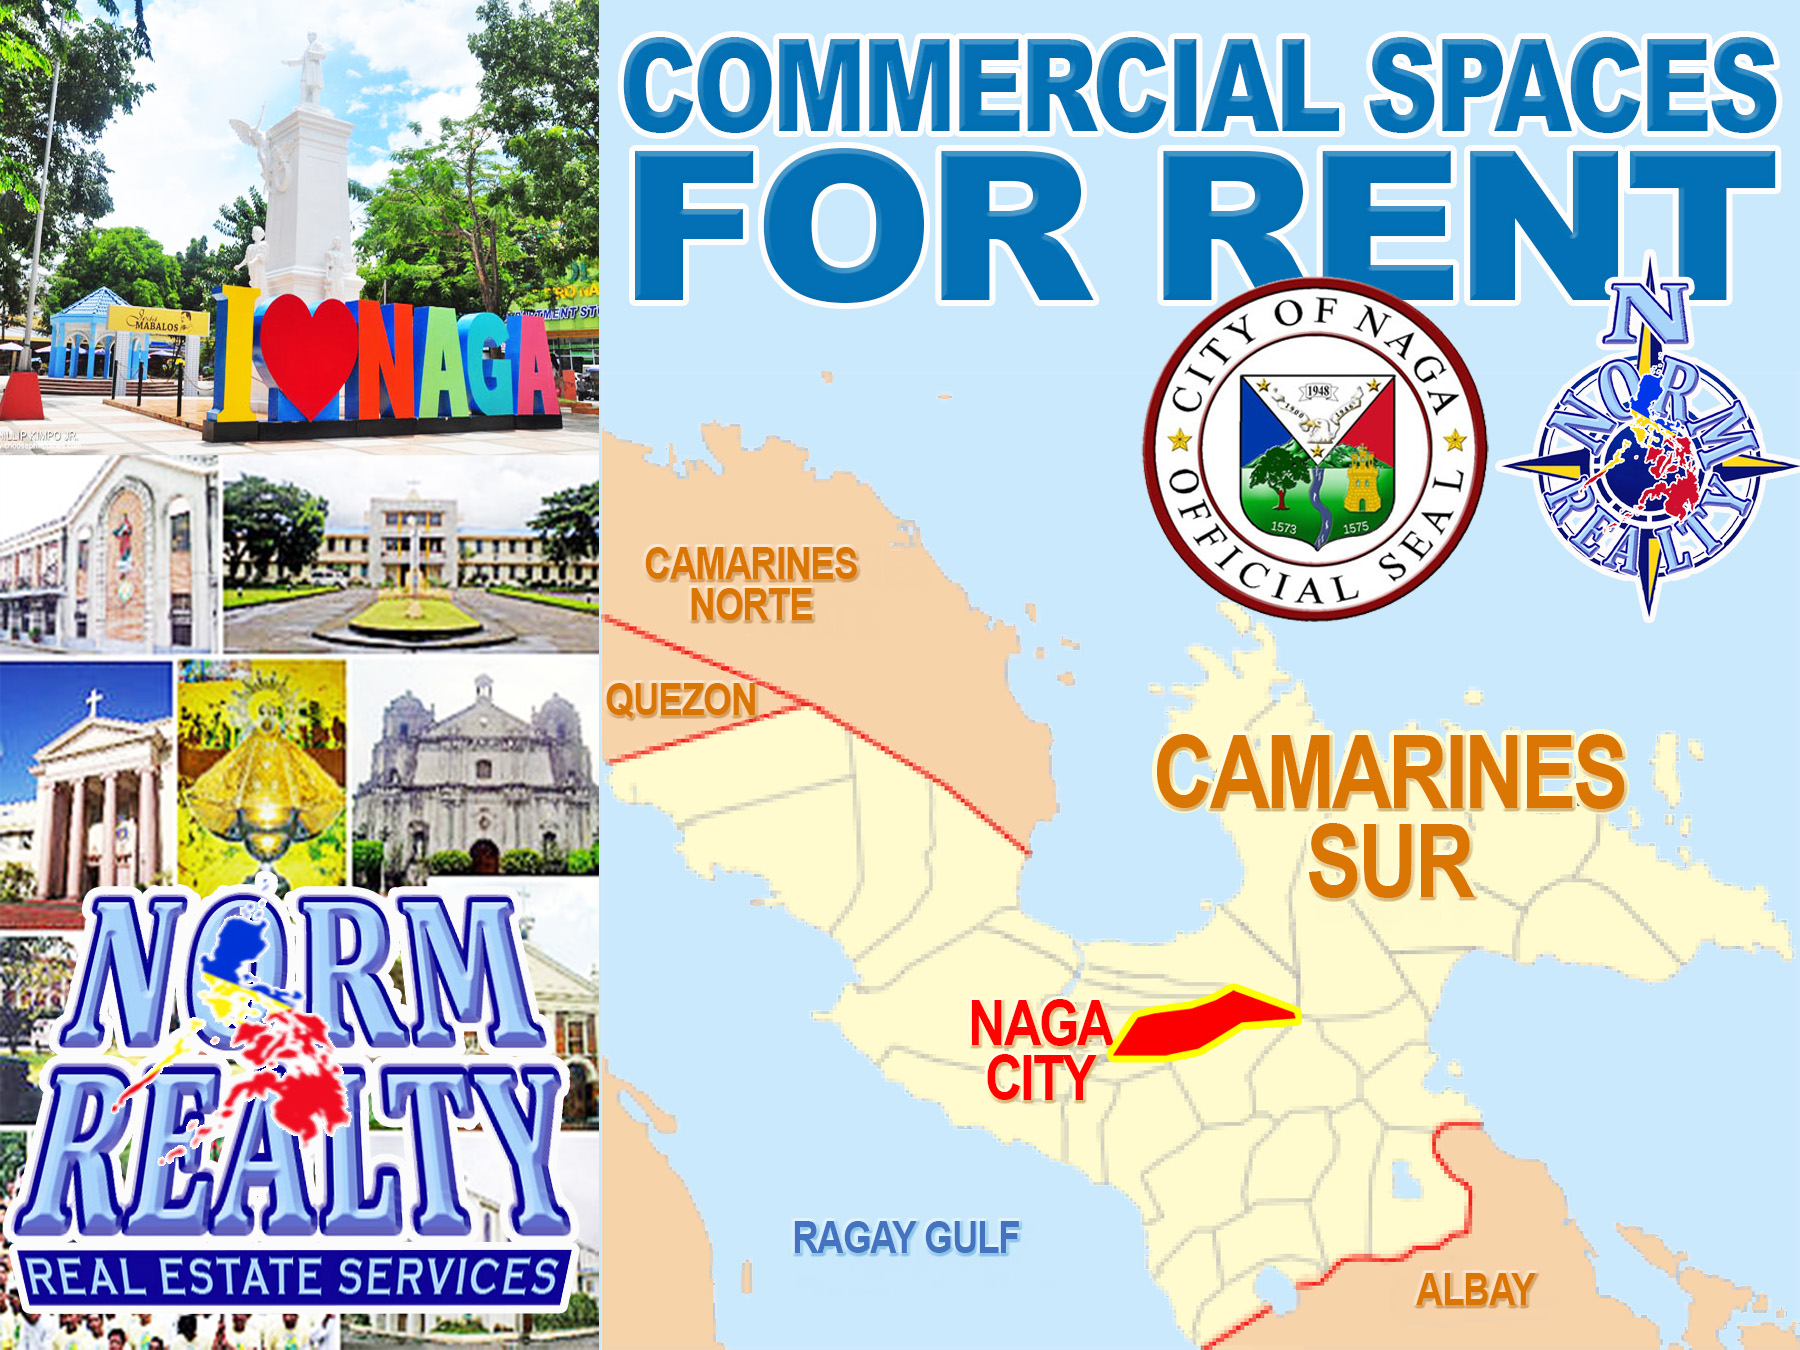 FOR RENT / LEASE: Office / Commercial / Industrial Camarines Sur > Naga City